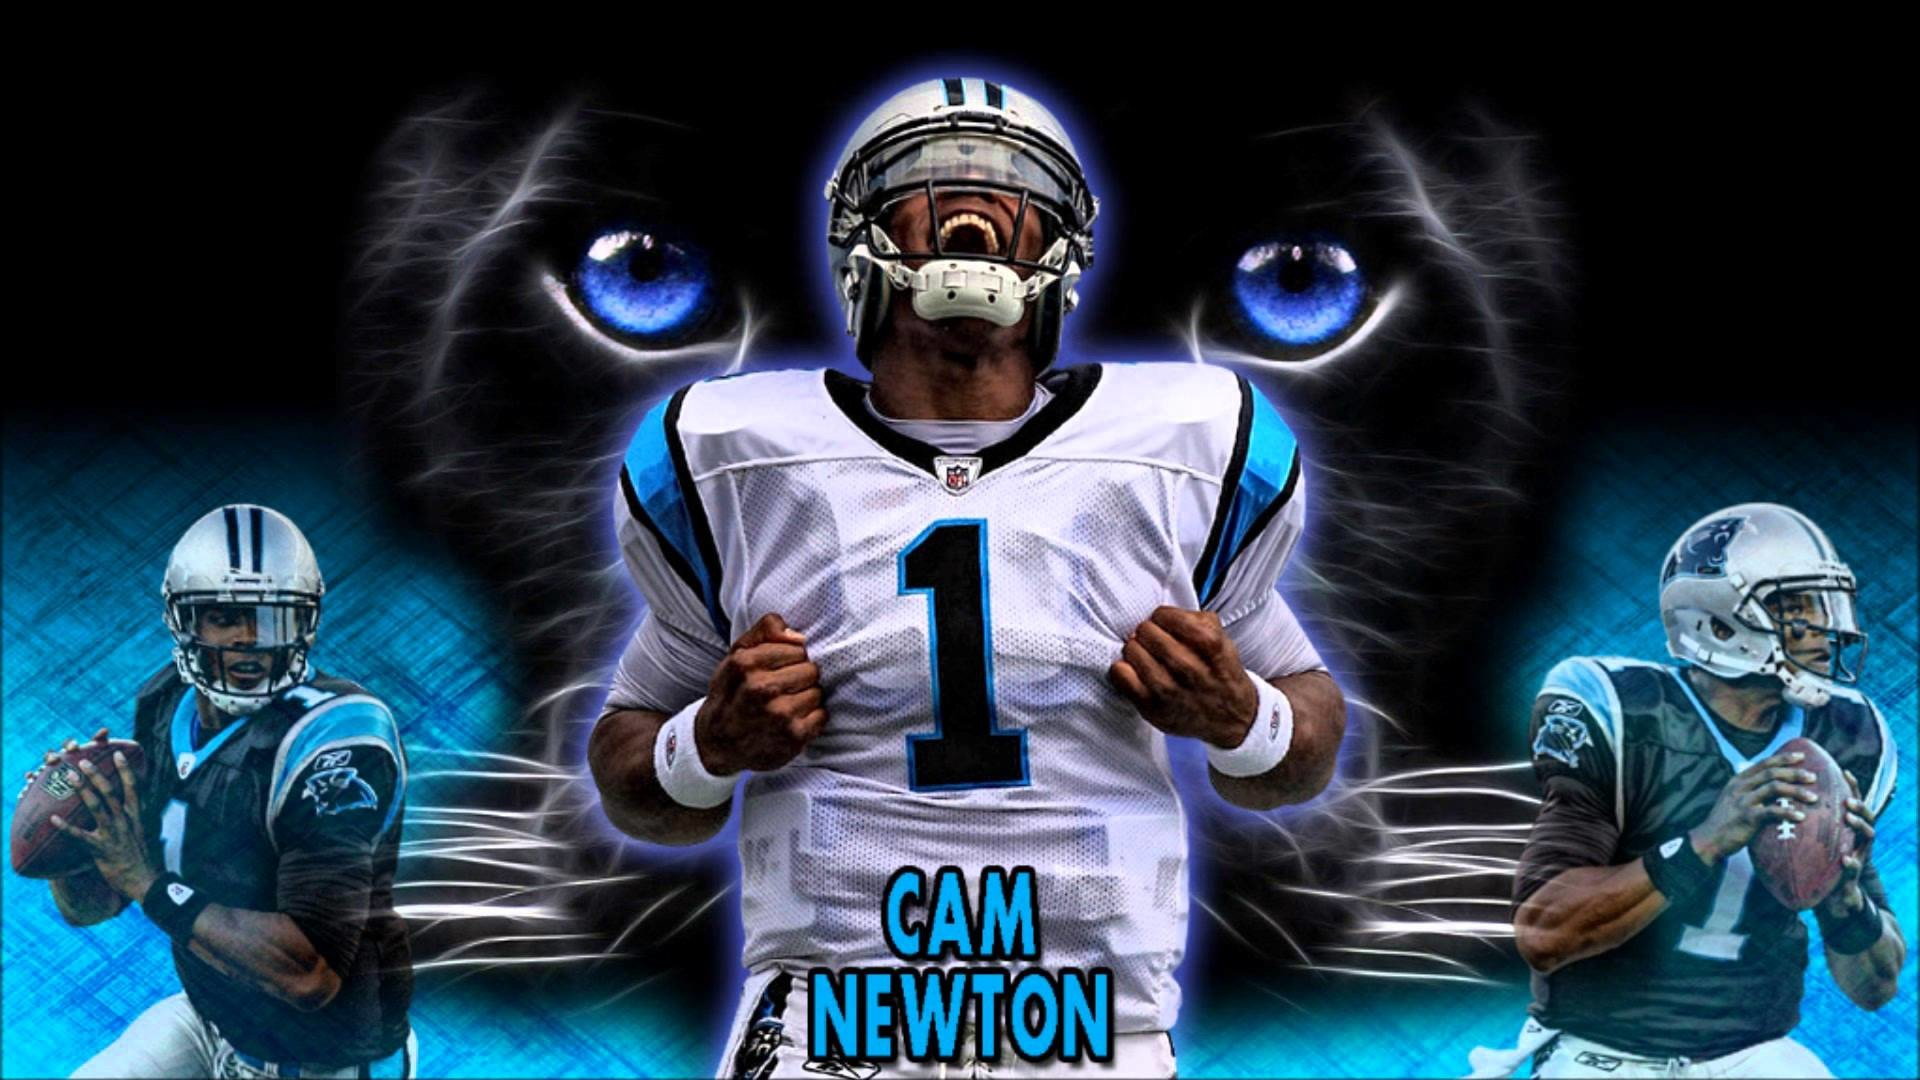 3dafdfeecc4 Cam Newton Superman Wallpaper (82+ images)